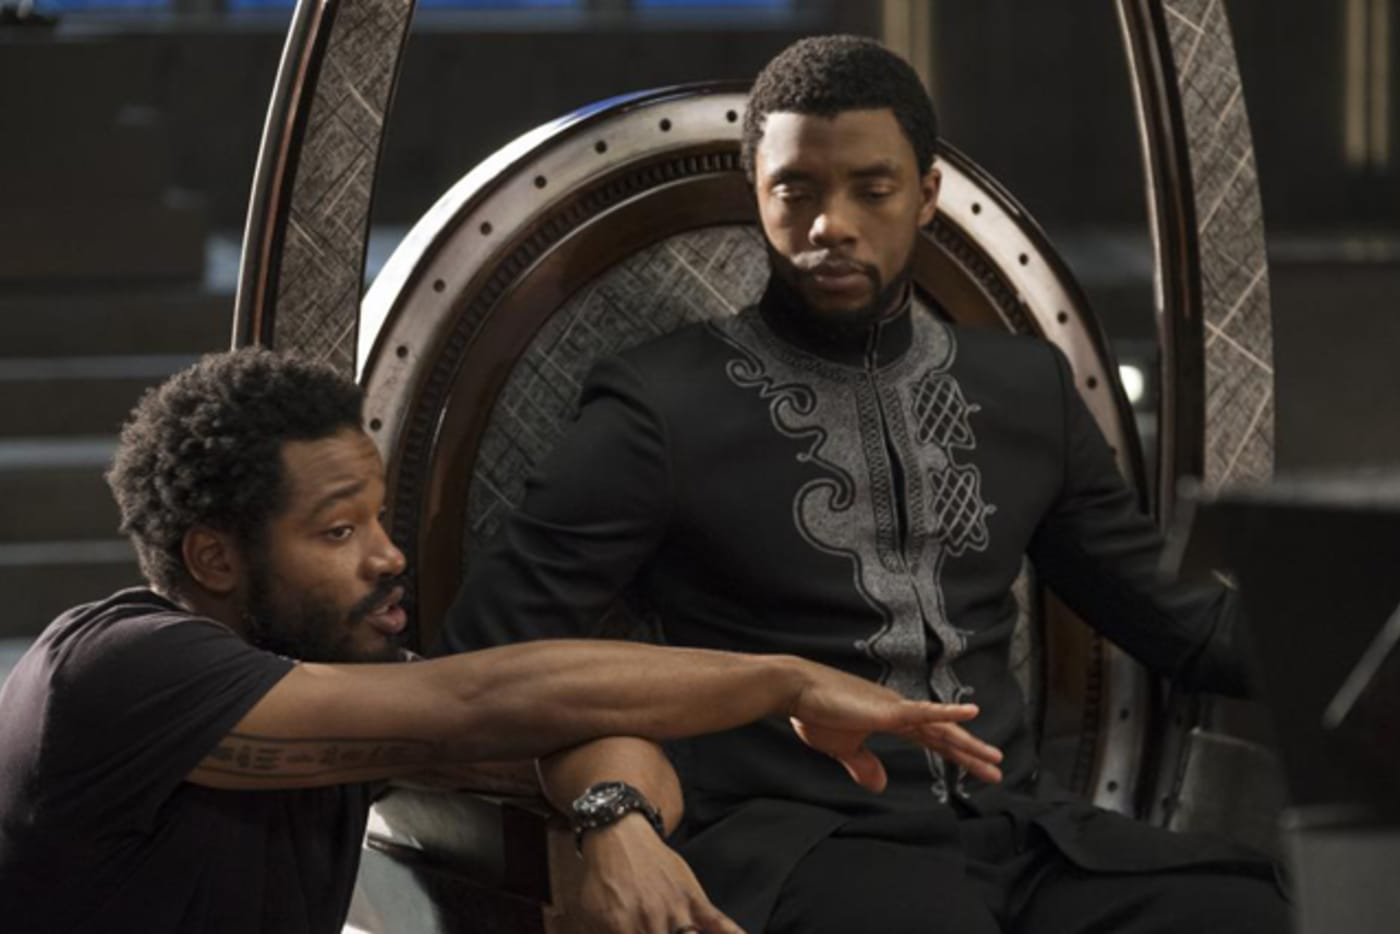 Behind the scenes of 'Black Panther'